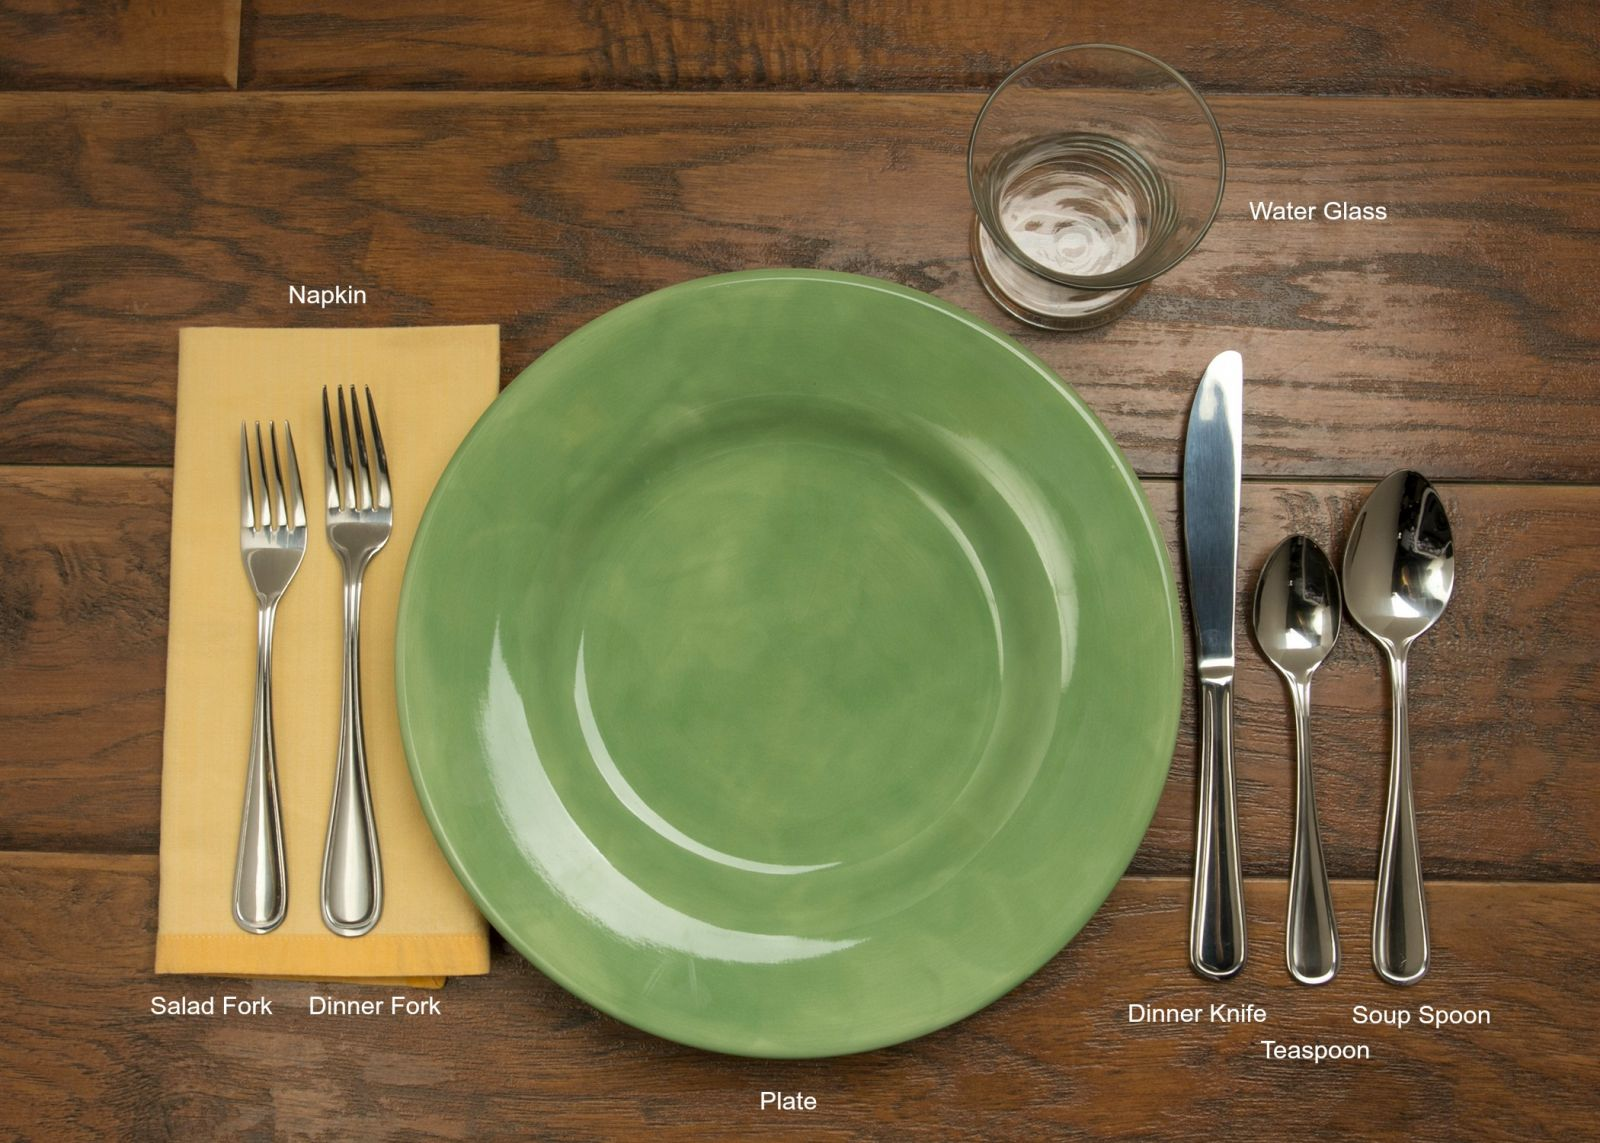 Table Setting table setting 101 | mrfood